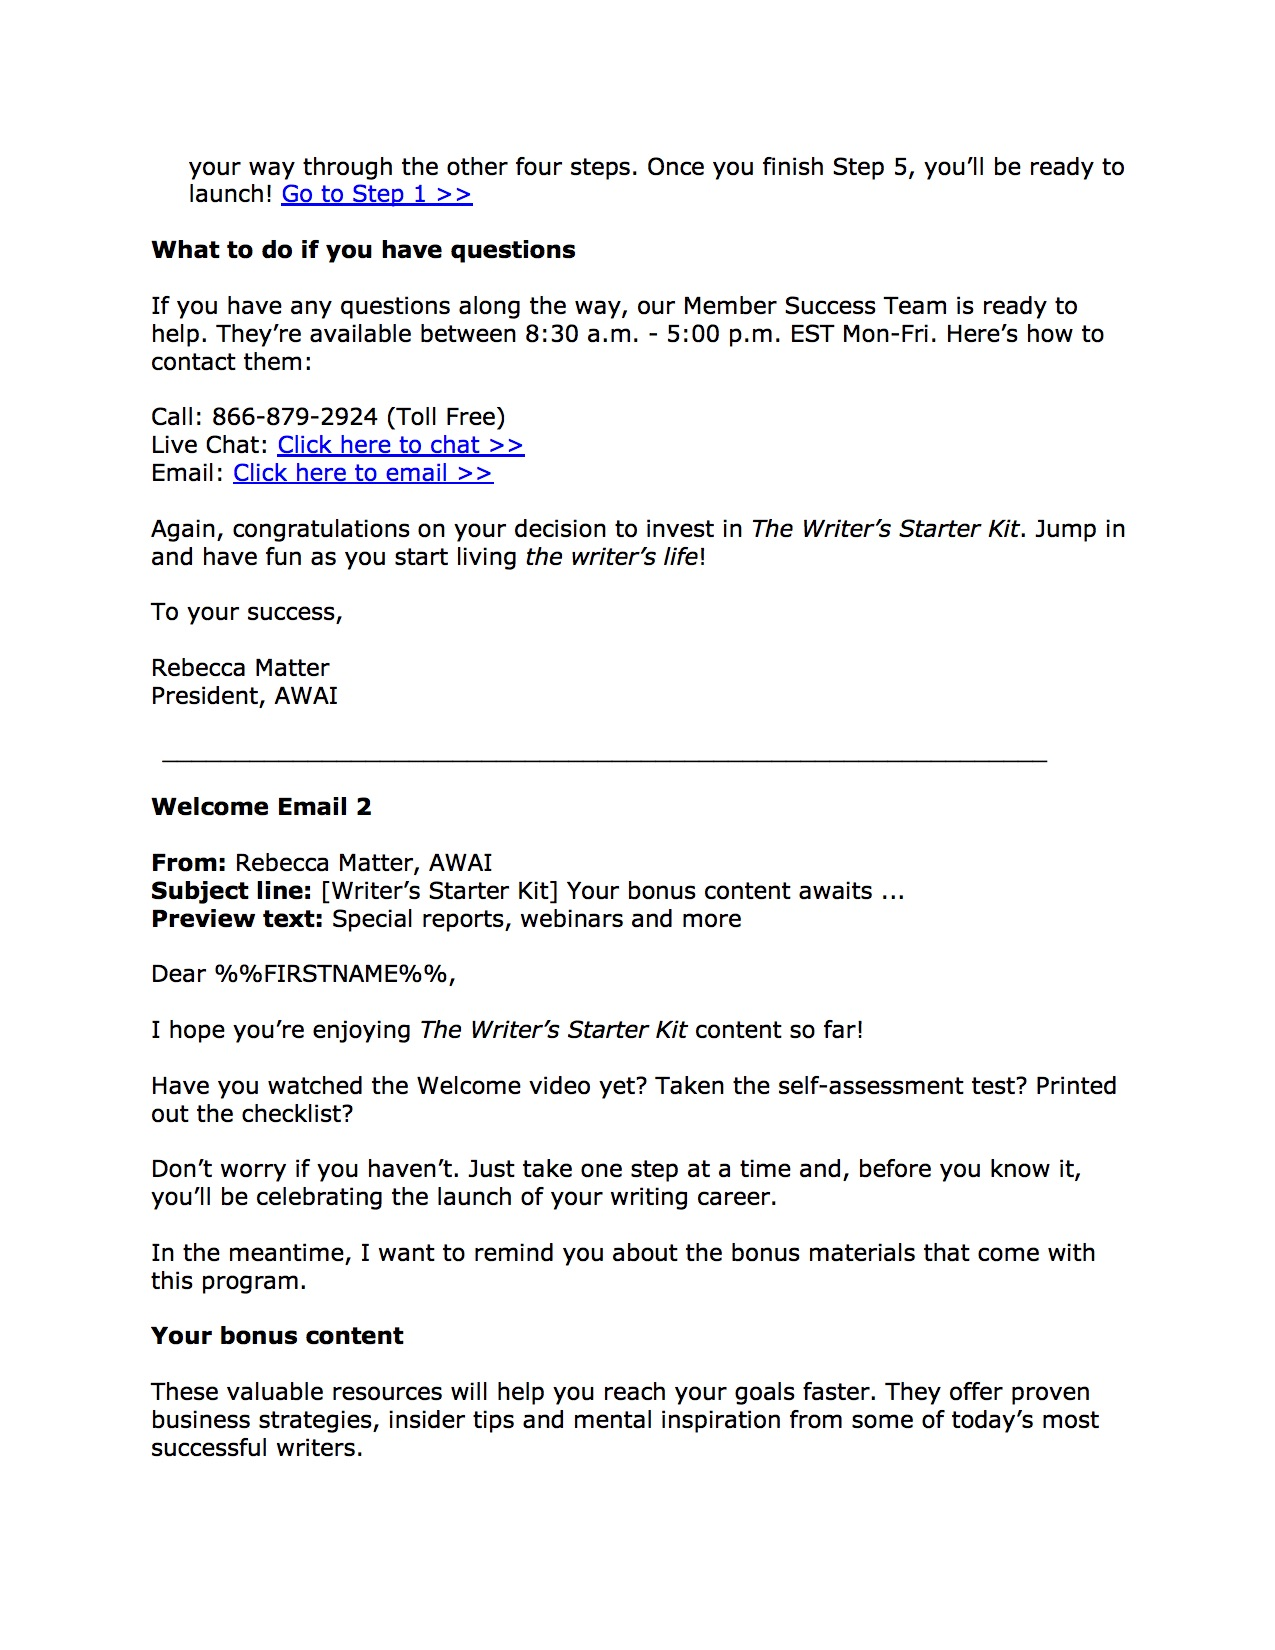 Welcome Email, WSK page 2